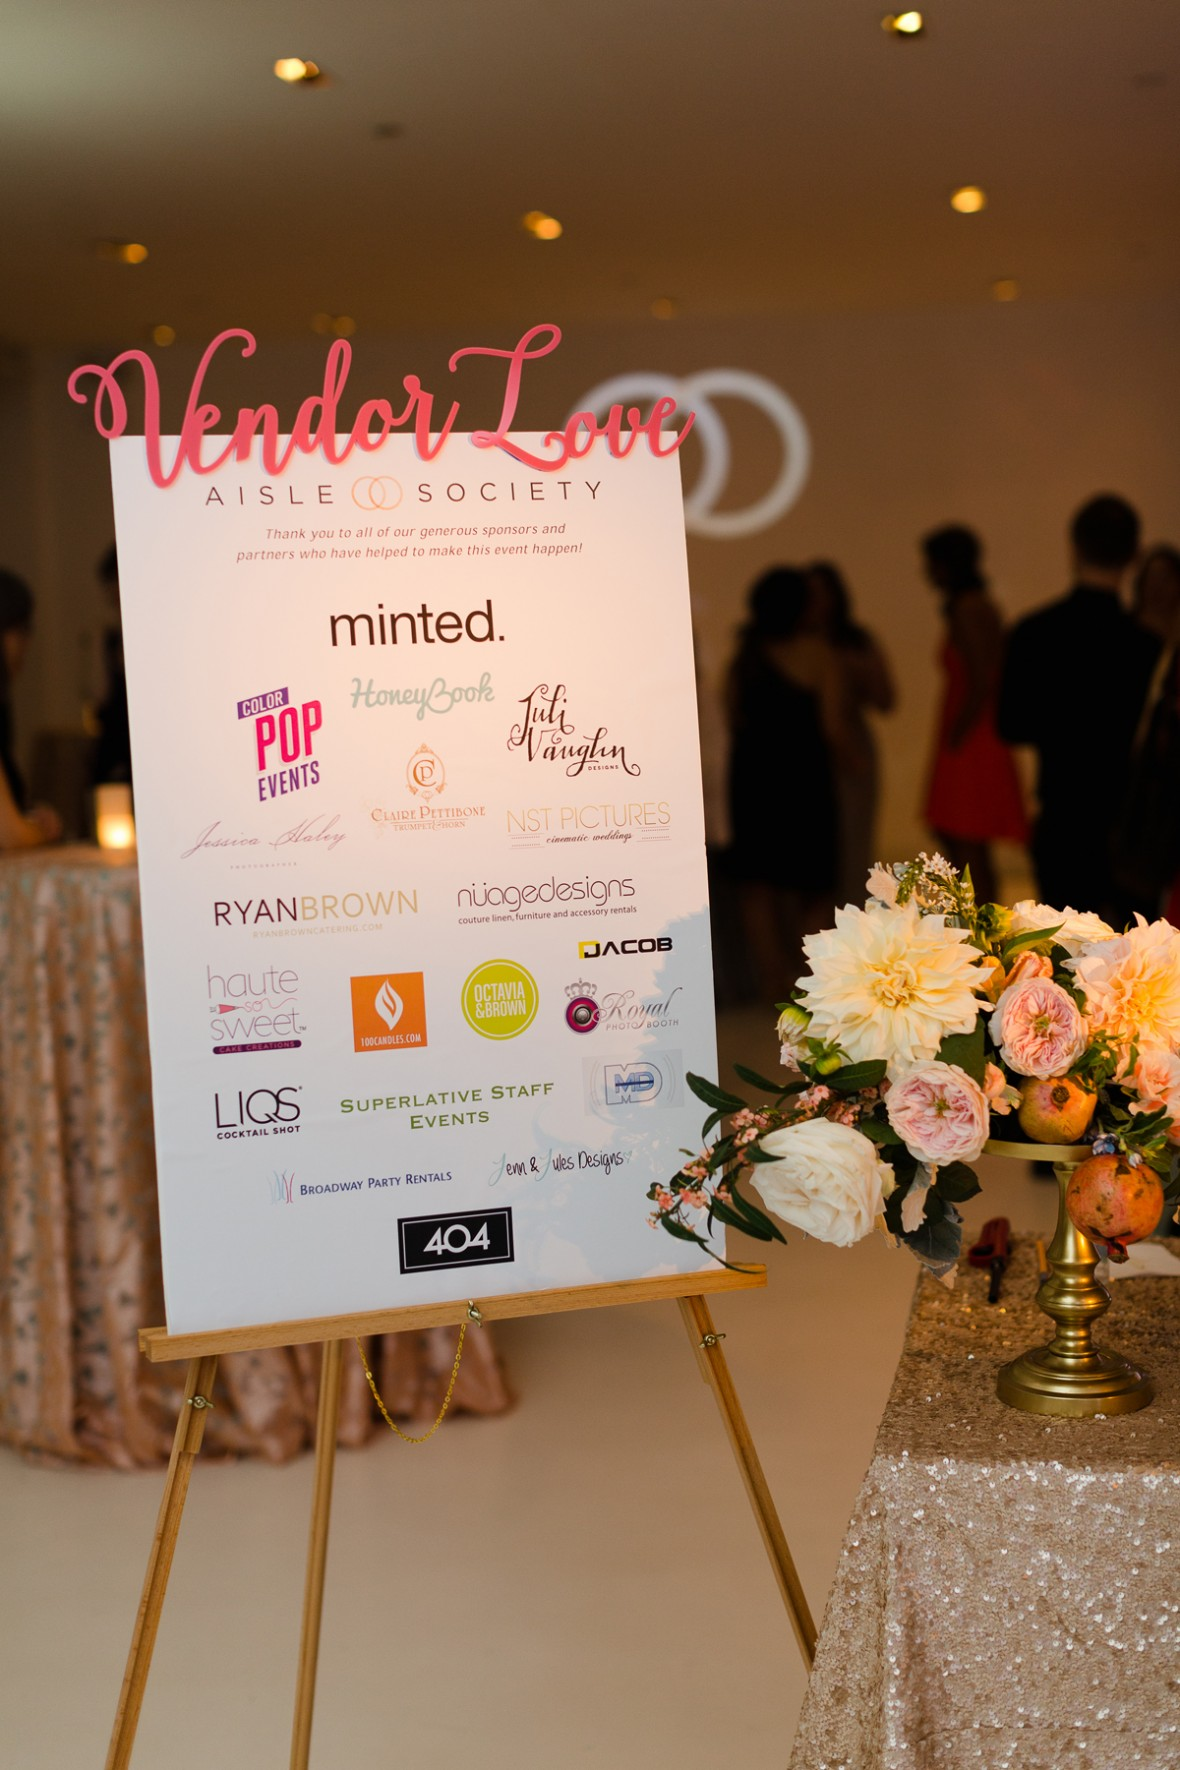 Vendor Sign - Aisle Society Debut Party - Sponsored by Minted